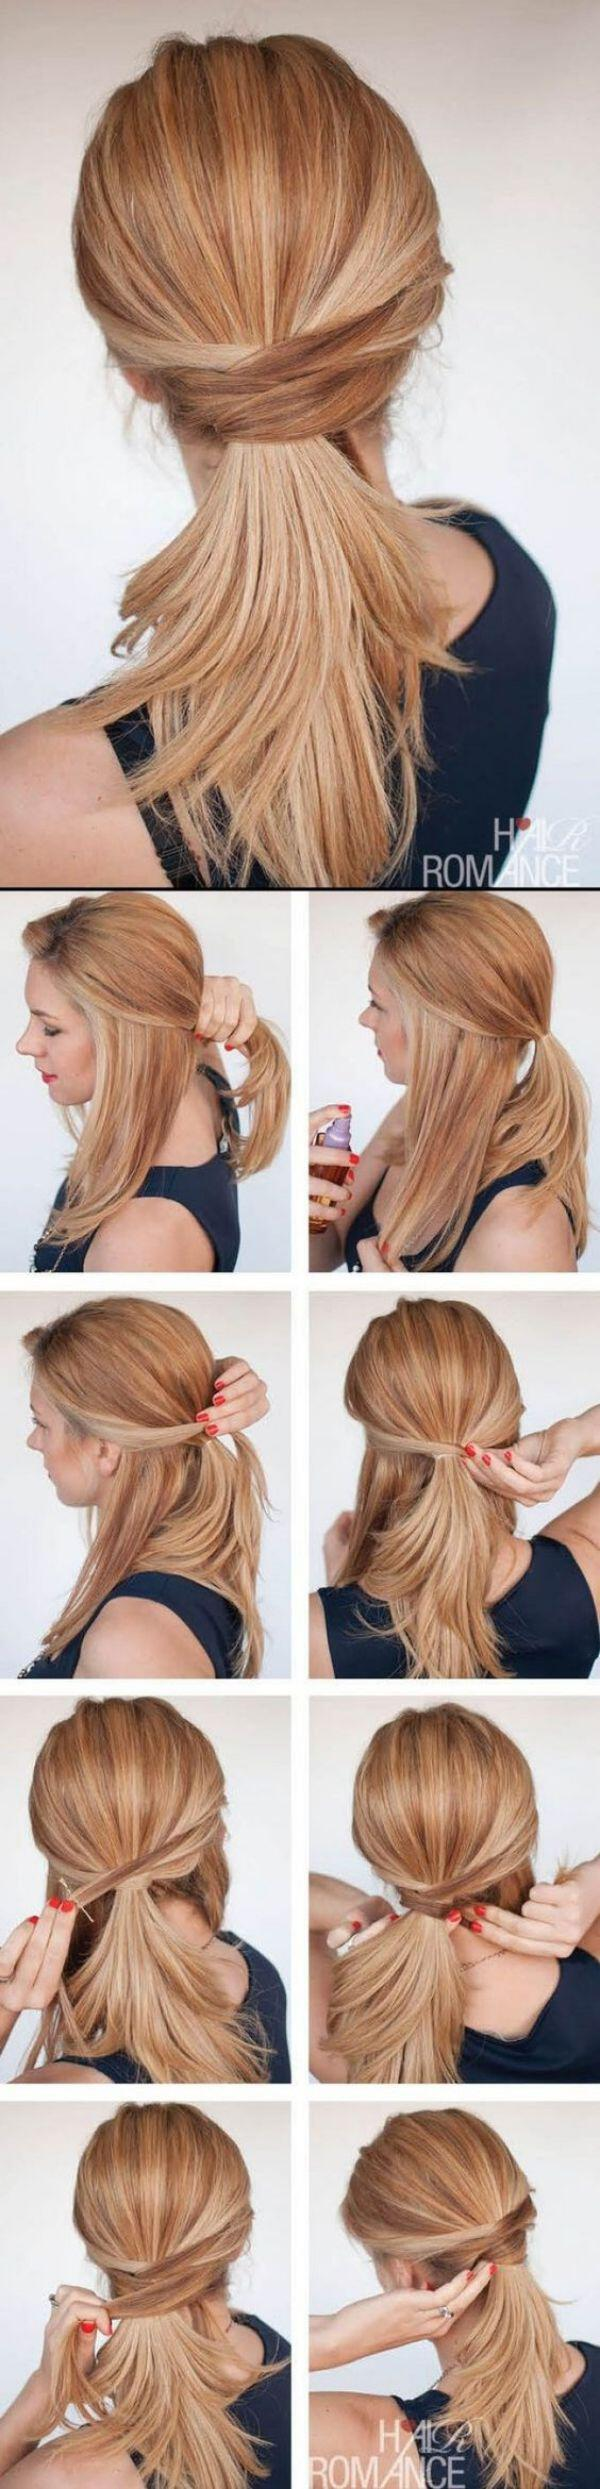 12 simple office hairstyles you have to try 4 - 12 simple office hairstyles you have to try